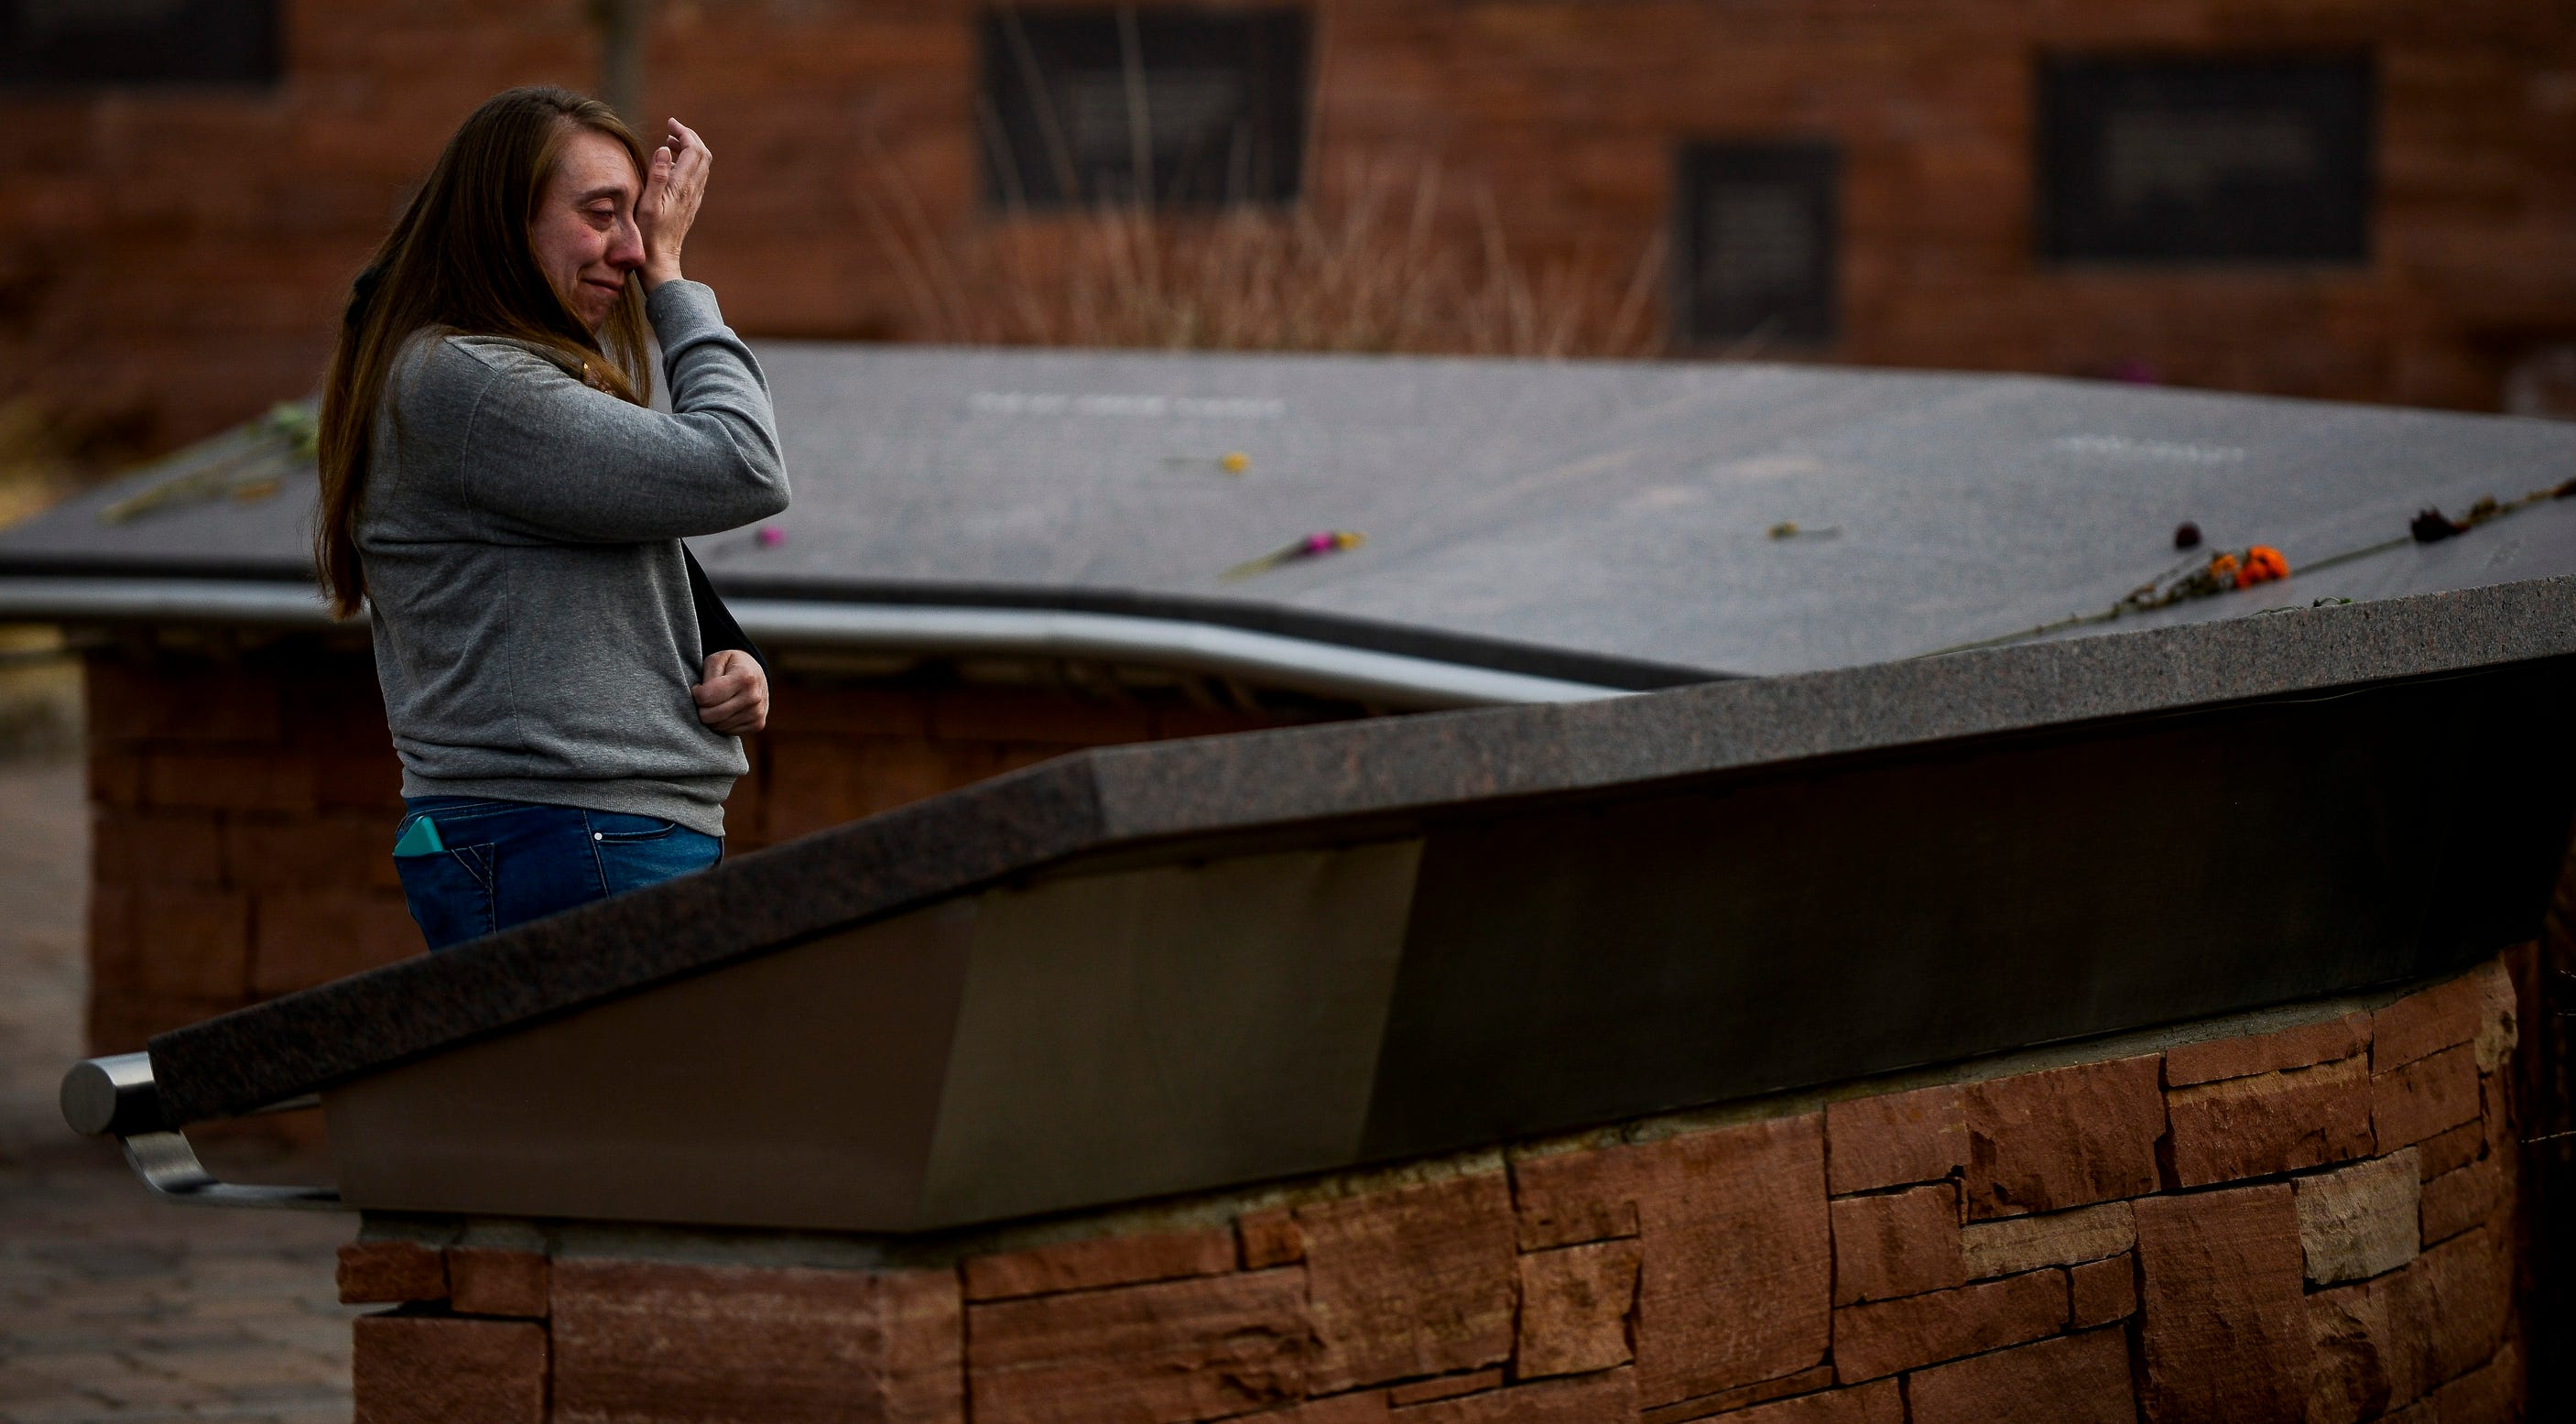 Nicole Boudreau, who was a freshman at Columbine High School during the 1999 mass shooting, wipes away a tears as she visits the Columbine Memorial in Littleton, Colo., on April 2, 2019.